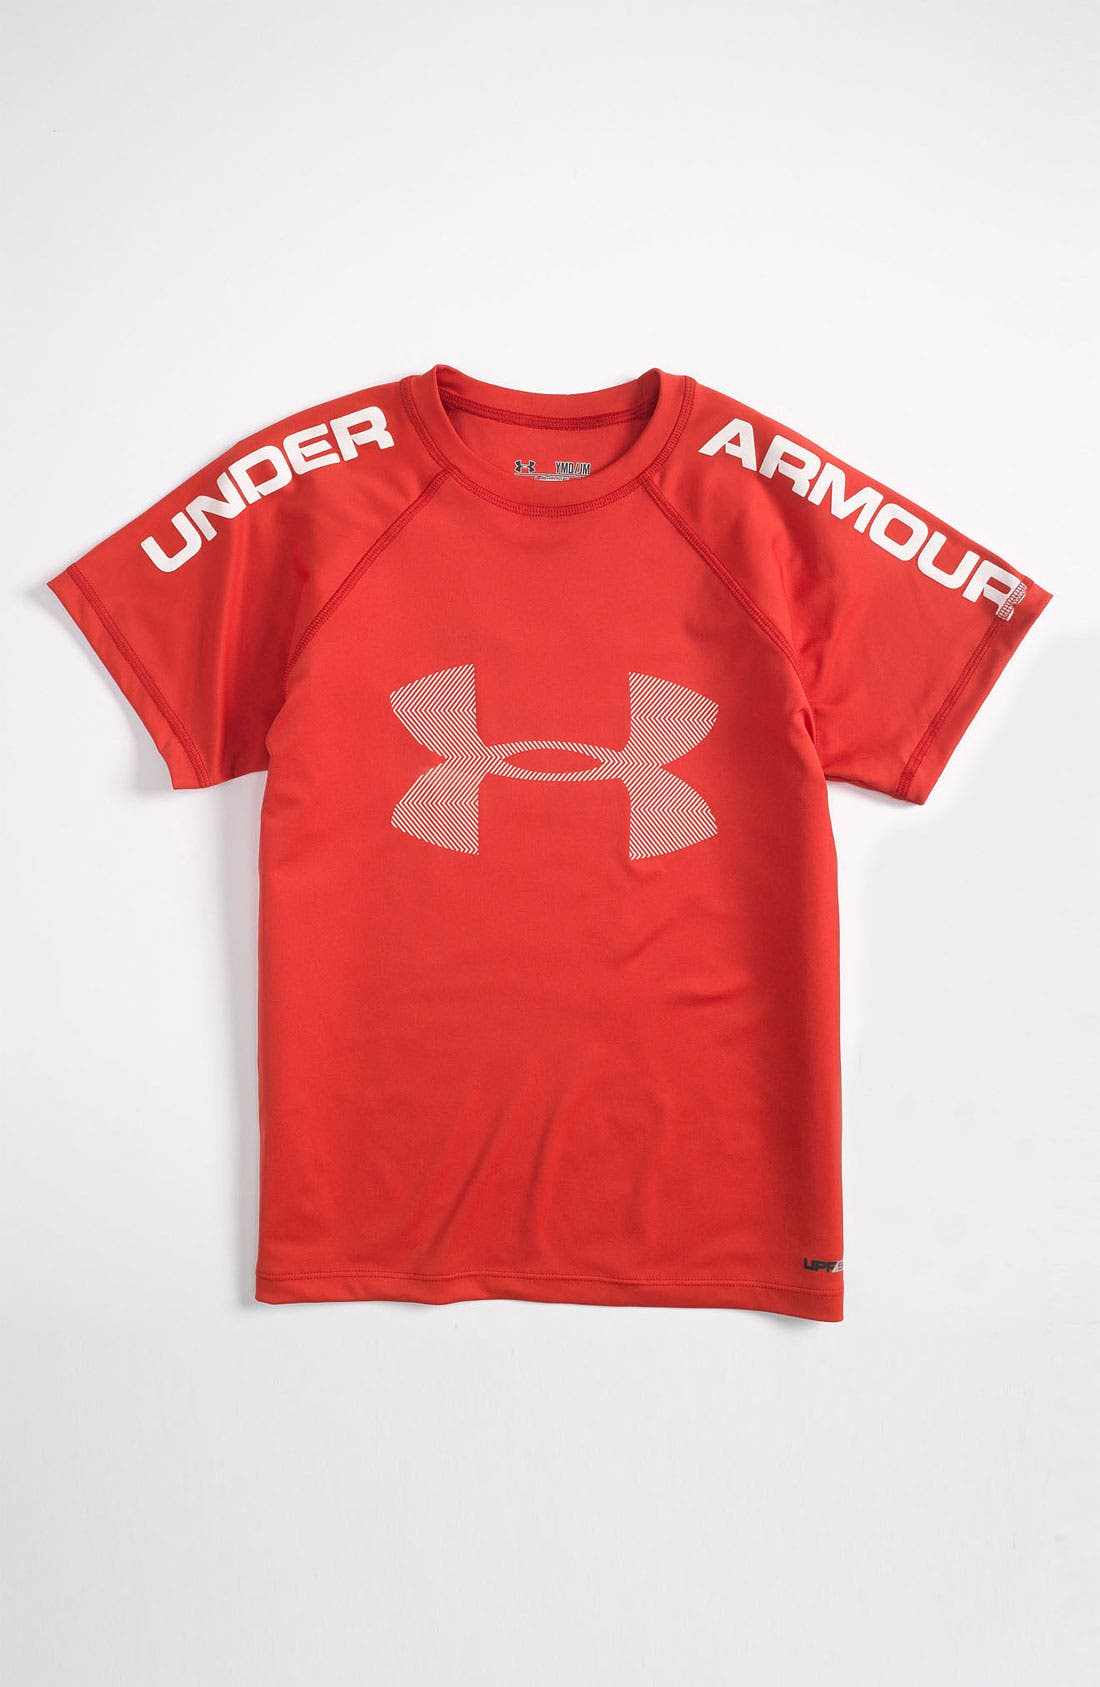 Alternate Image 1 Selected - Under Armour 'Ripping' T-Shirt (Big Boys)